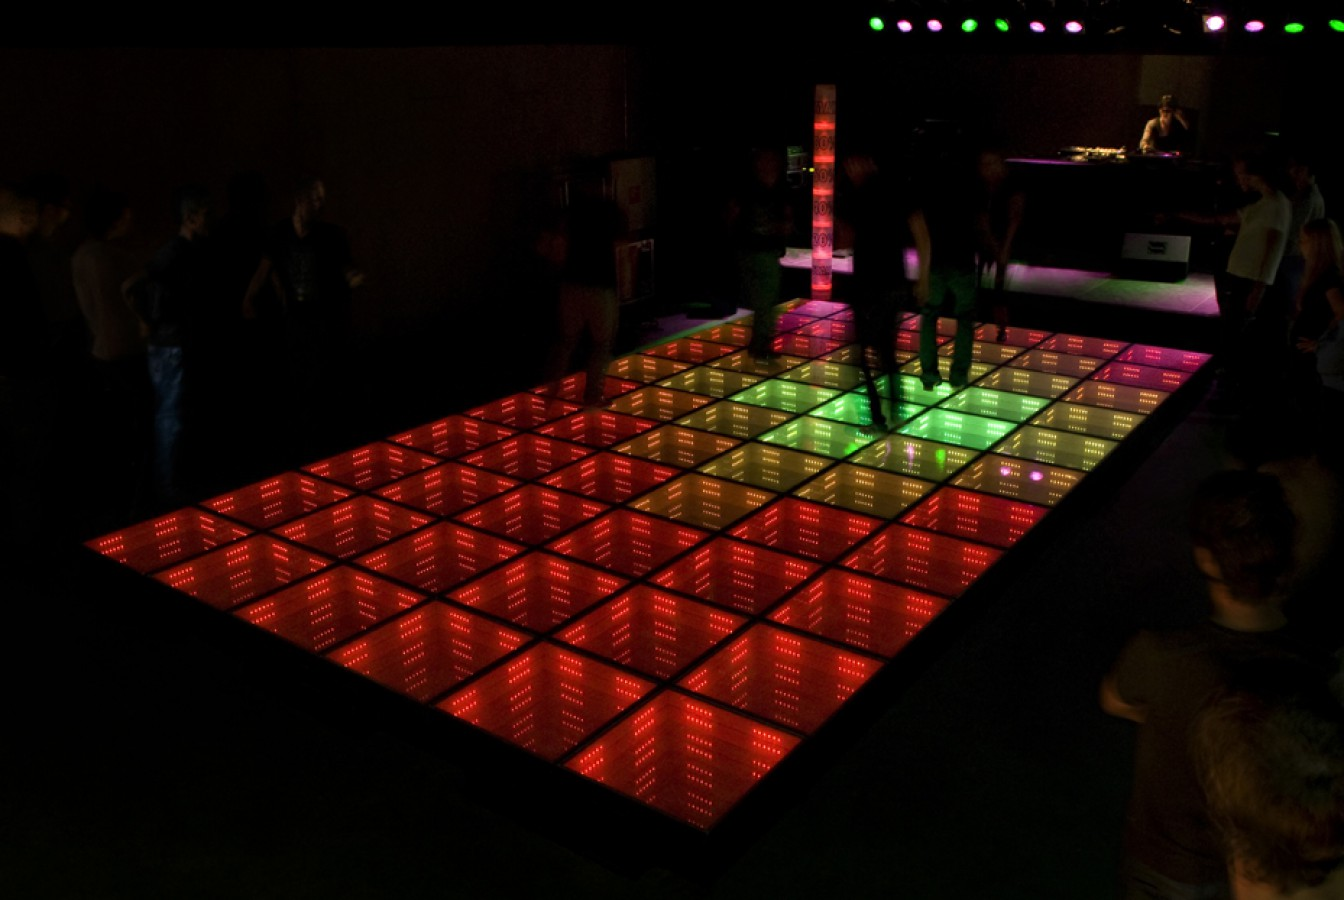 3d Tiles Live Wallpaper Serious Wonder Sustainable Dance Floors Could Fuel The